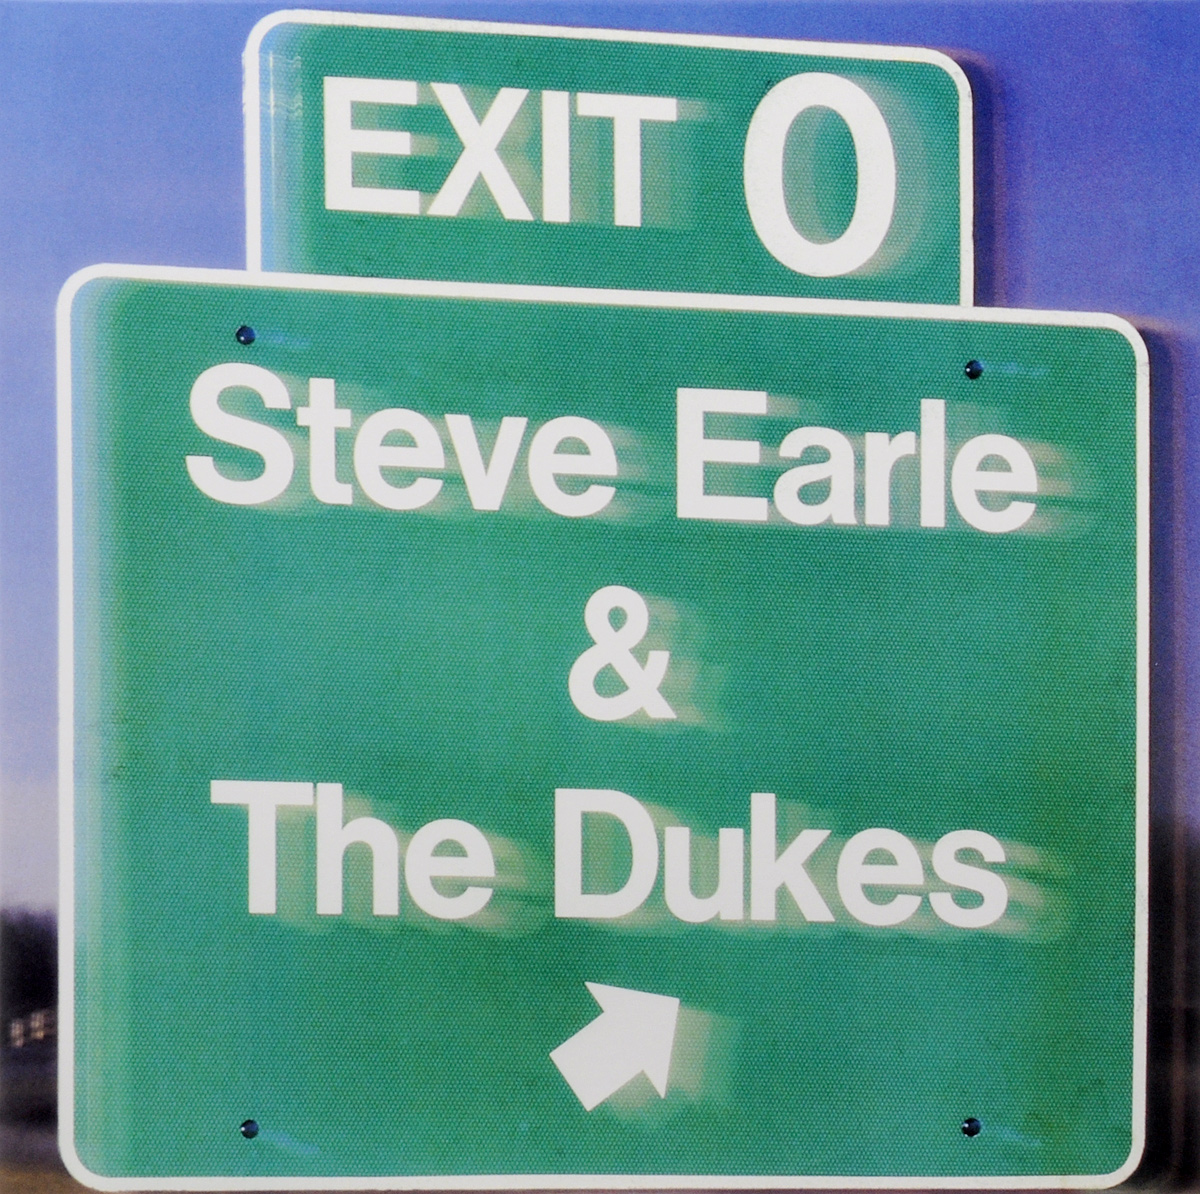 Стив Эрль,The Dukes Steve Earle & The Dukes. Exit 0 (LP) steve earle vancouver